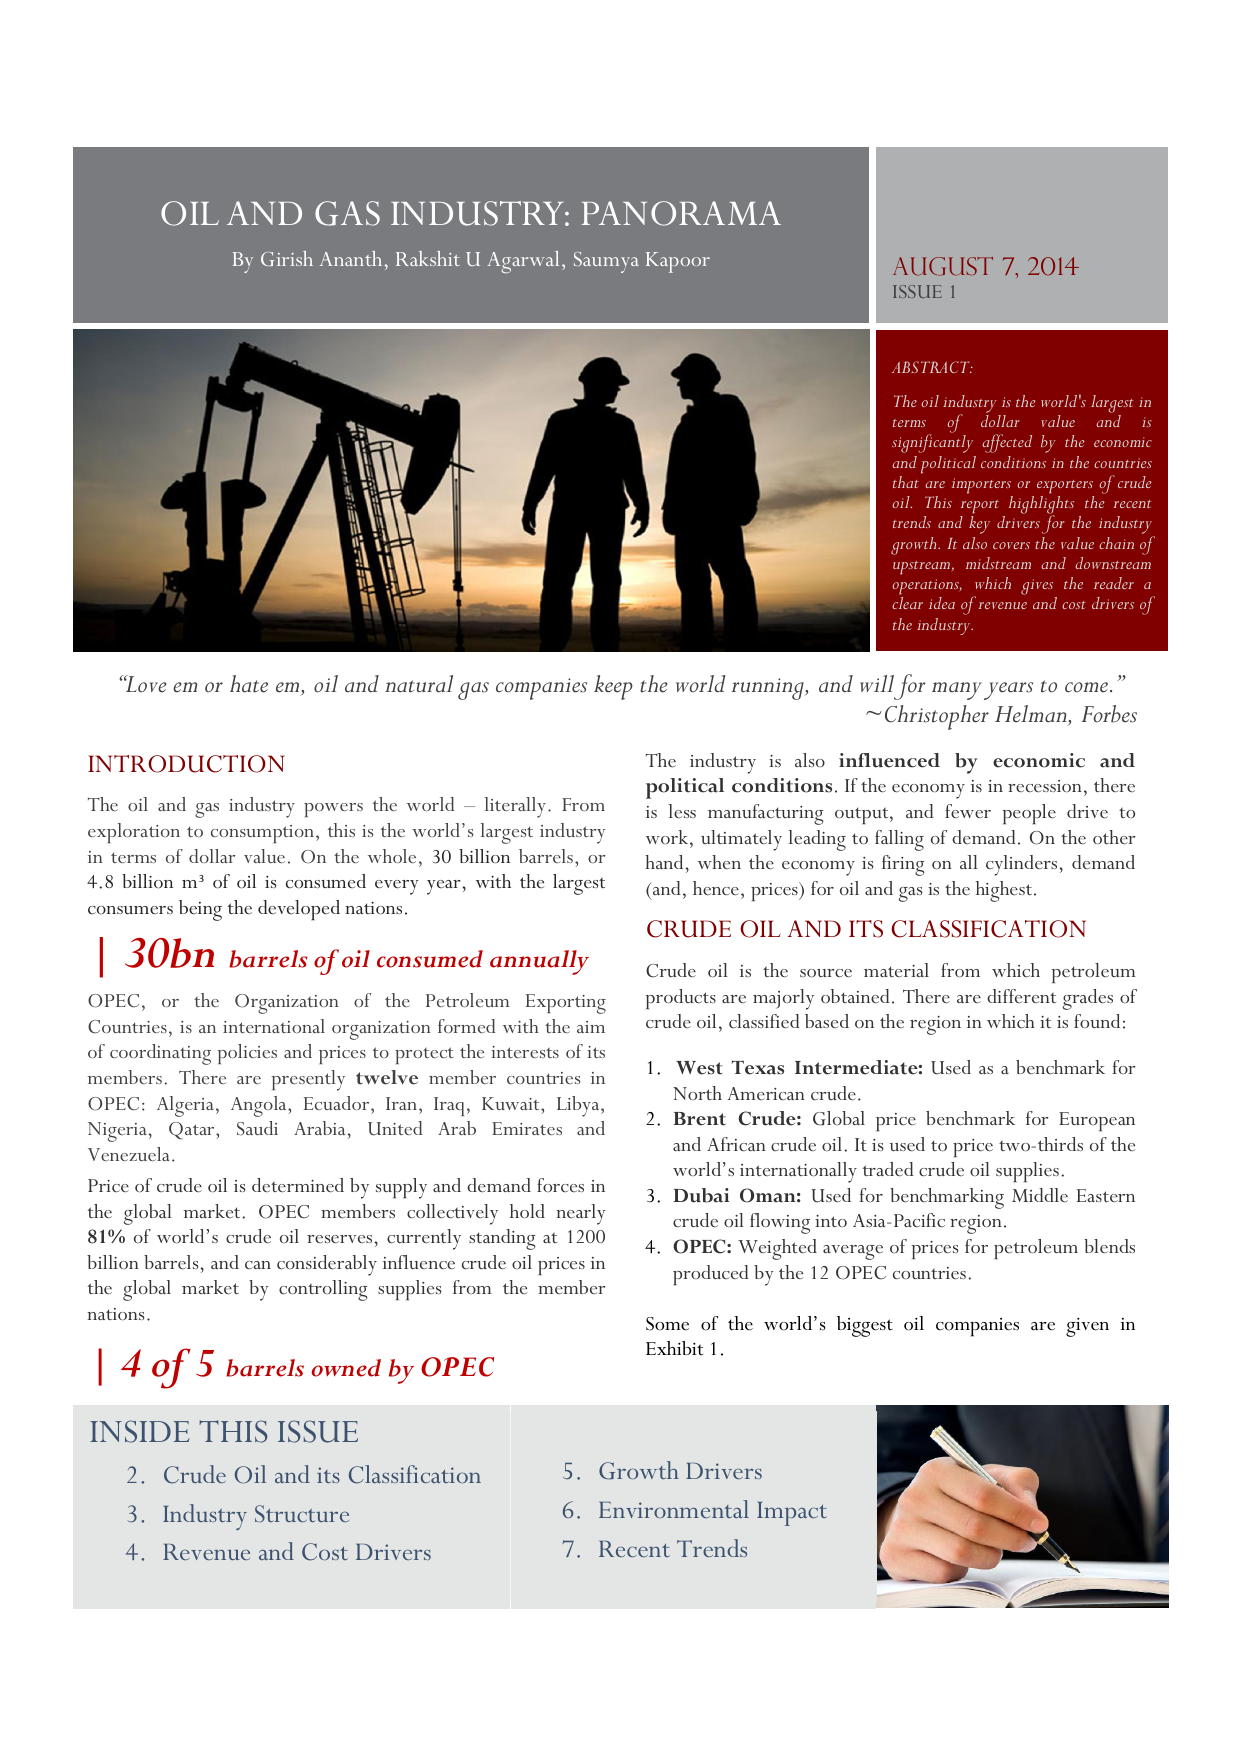 oil and gas industry: panorama